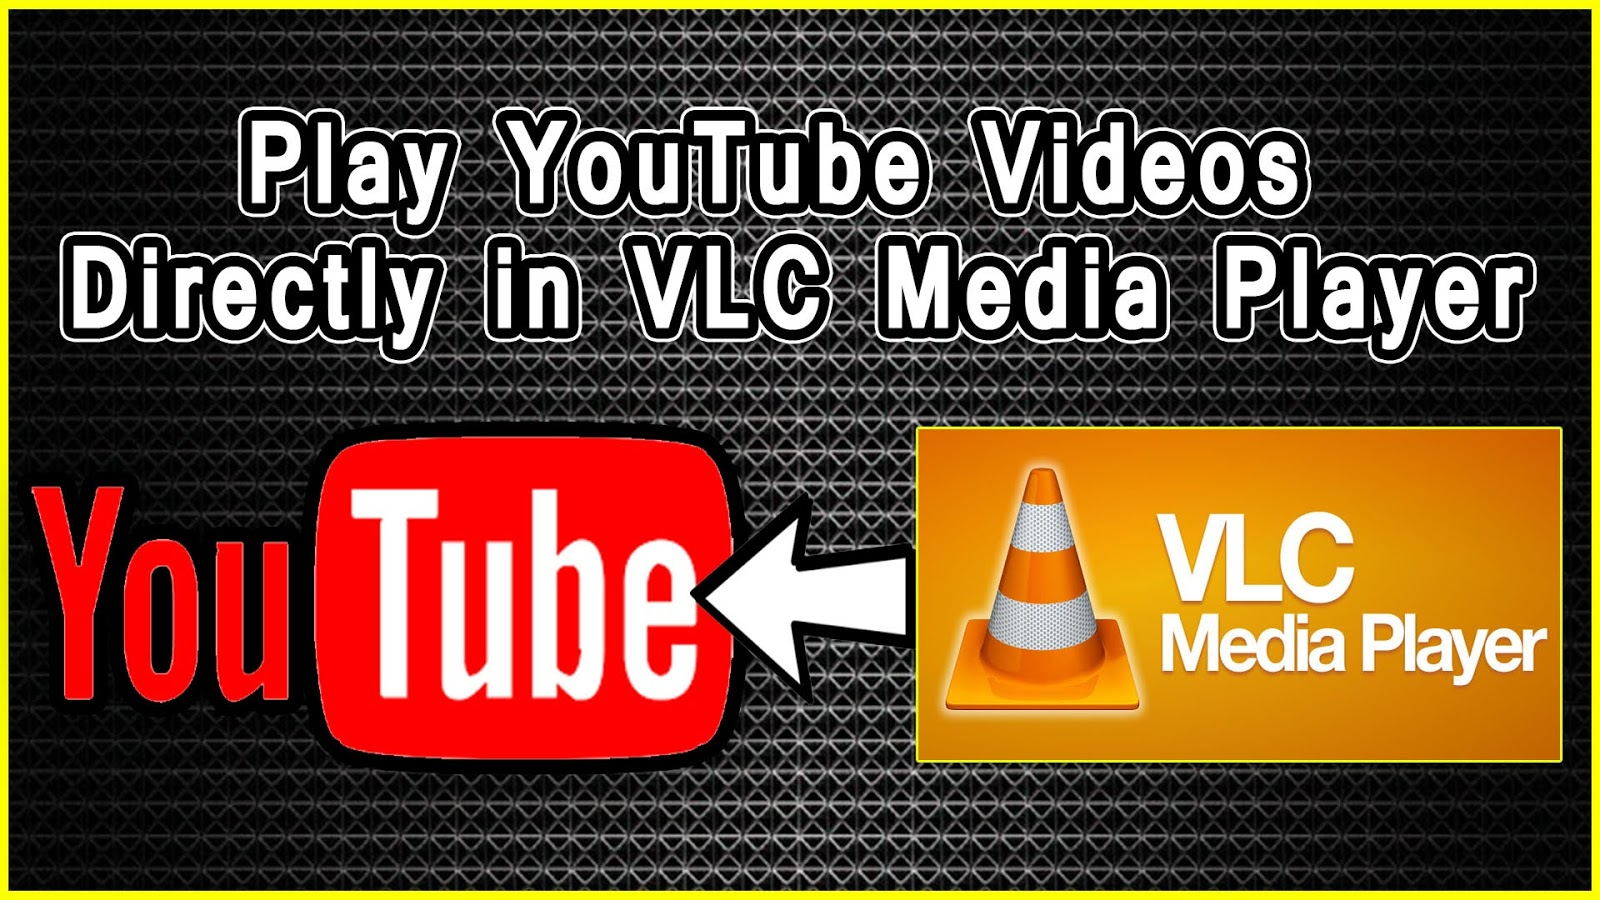 Play YouTube videos in VLC media player ~ Daily Tech Tips 2019